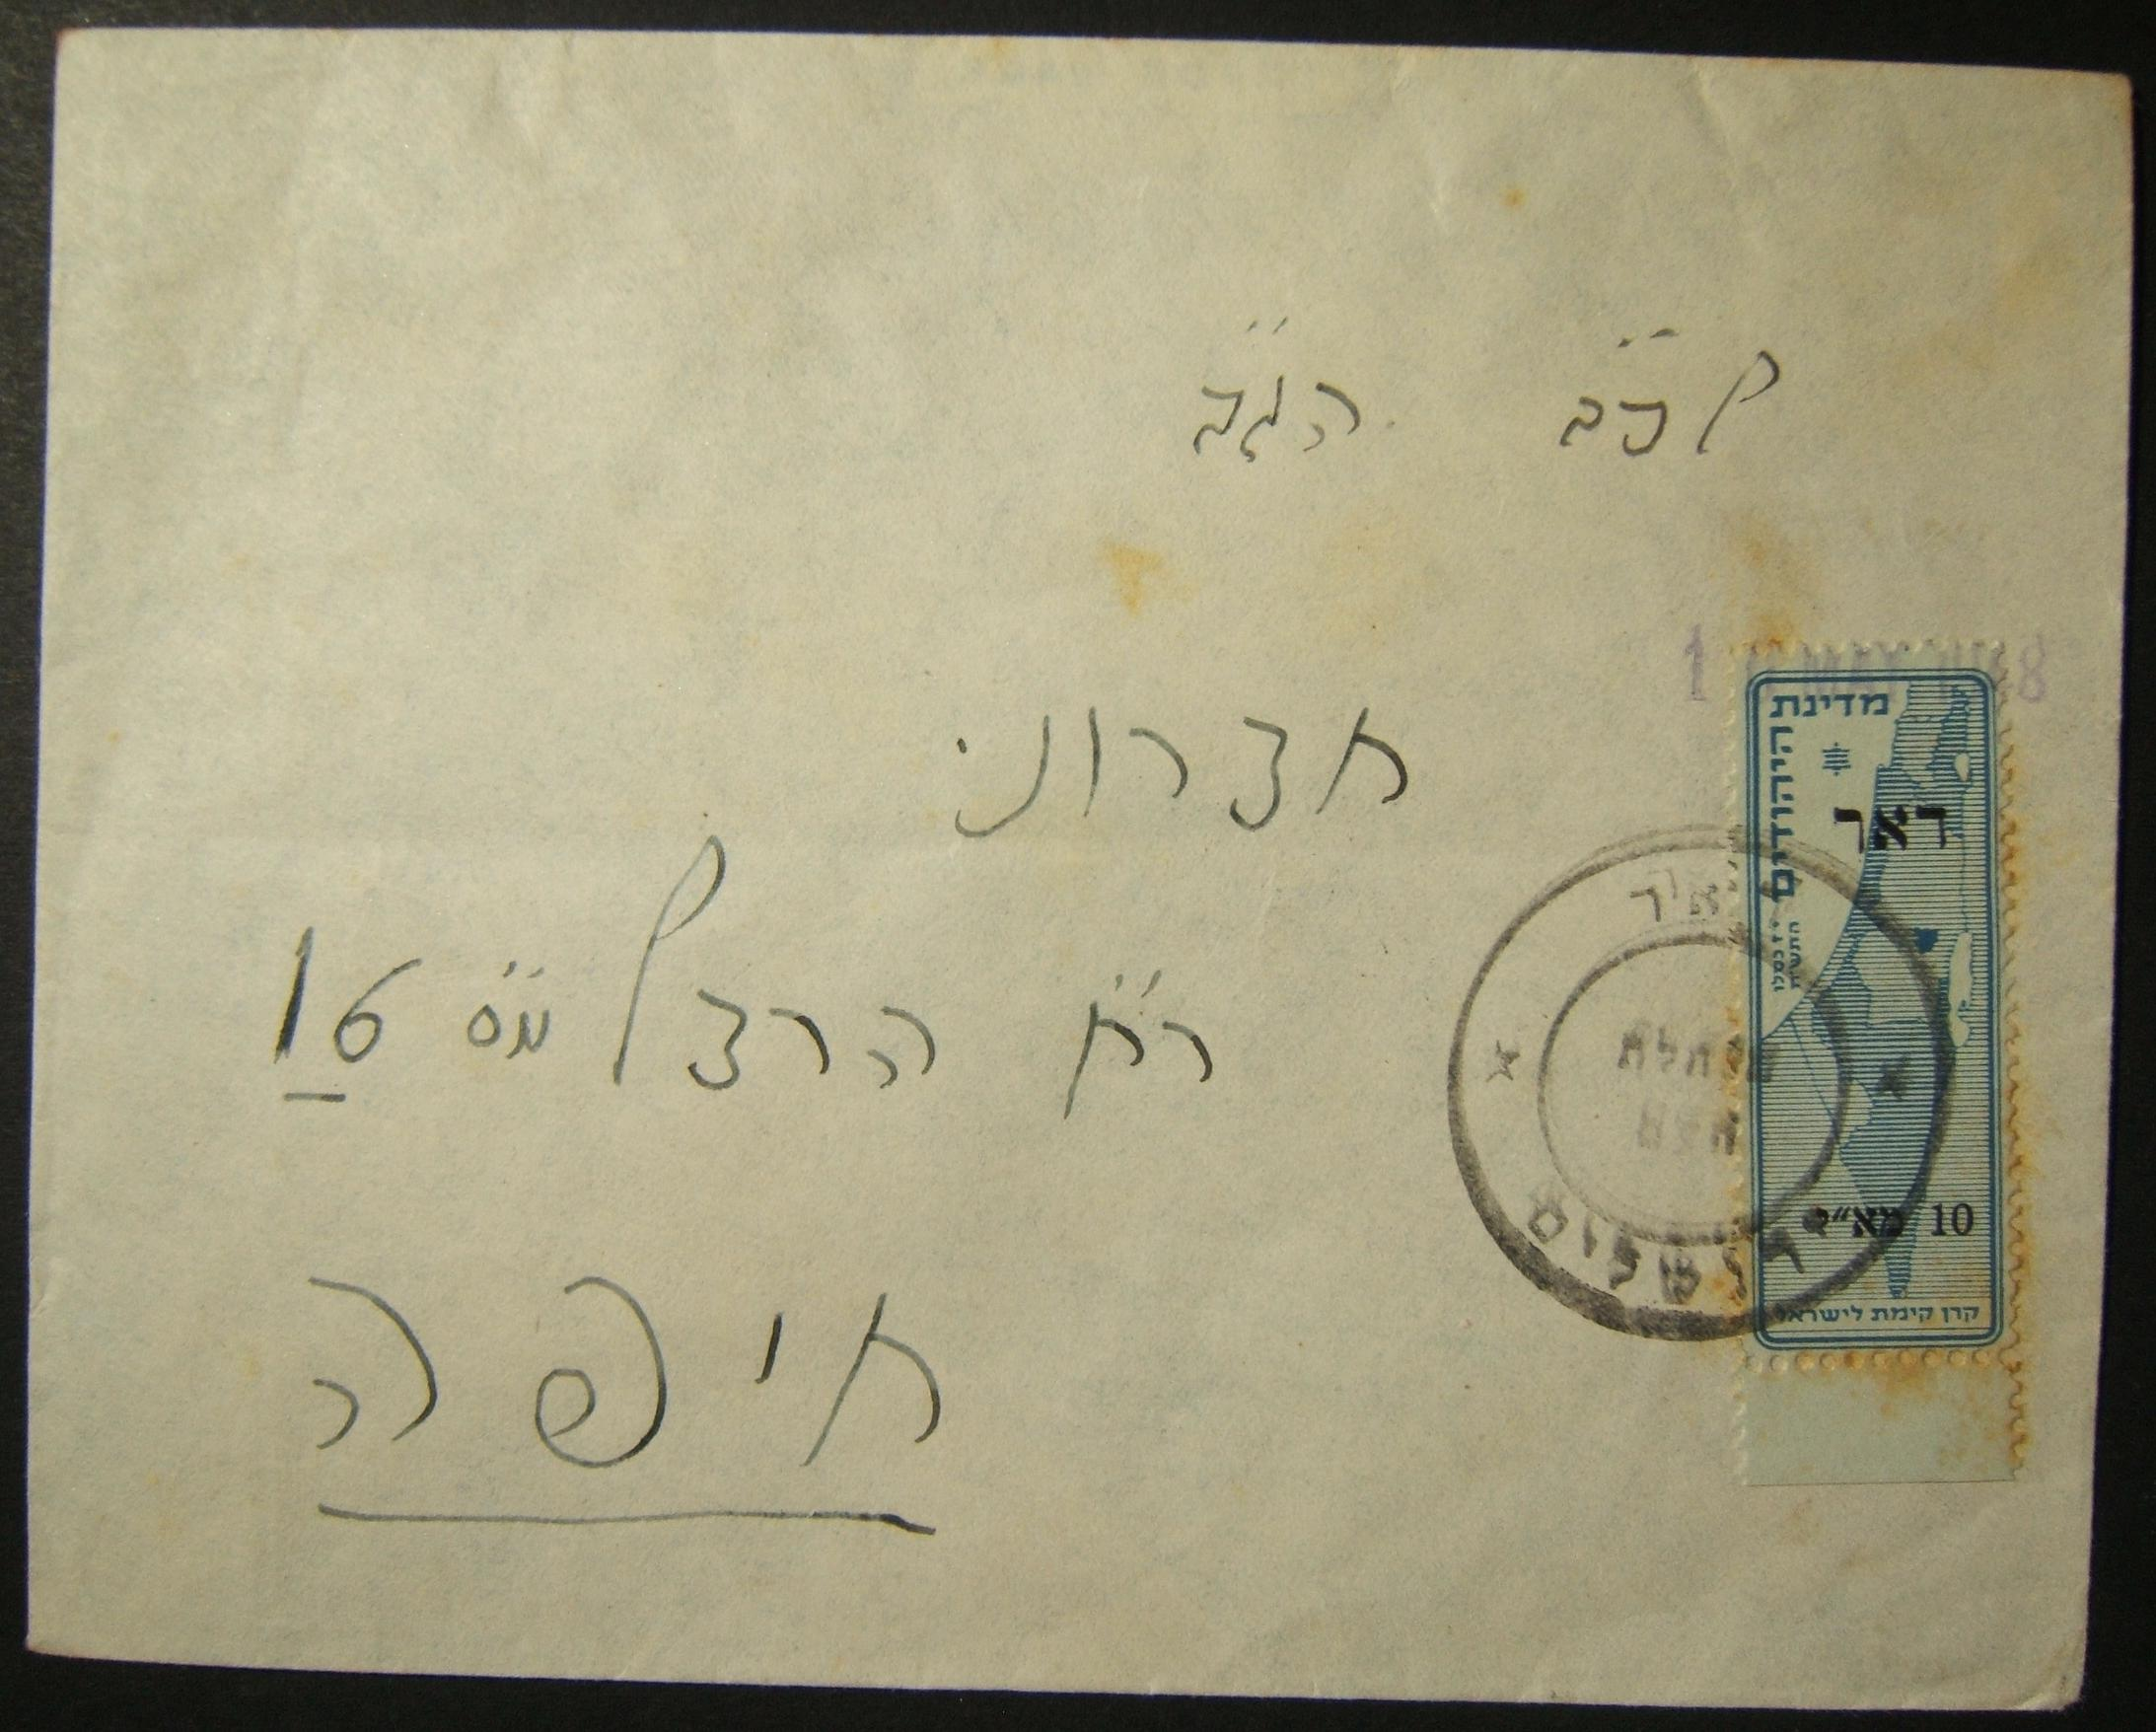 10-05-1948 1st convoy mail from JERUSALEM to HAIFA with interim franks/postmarks